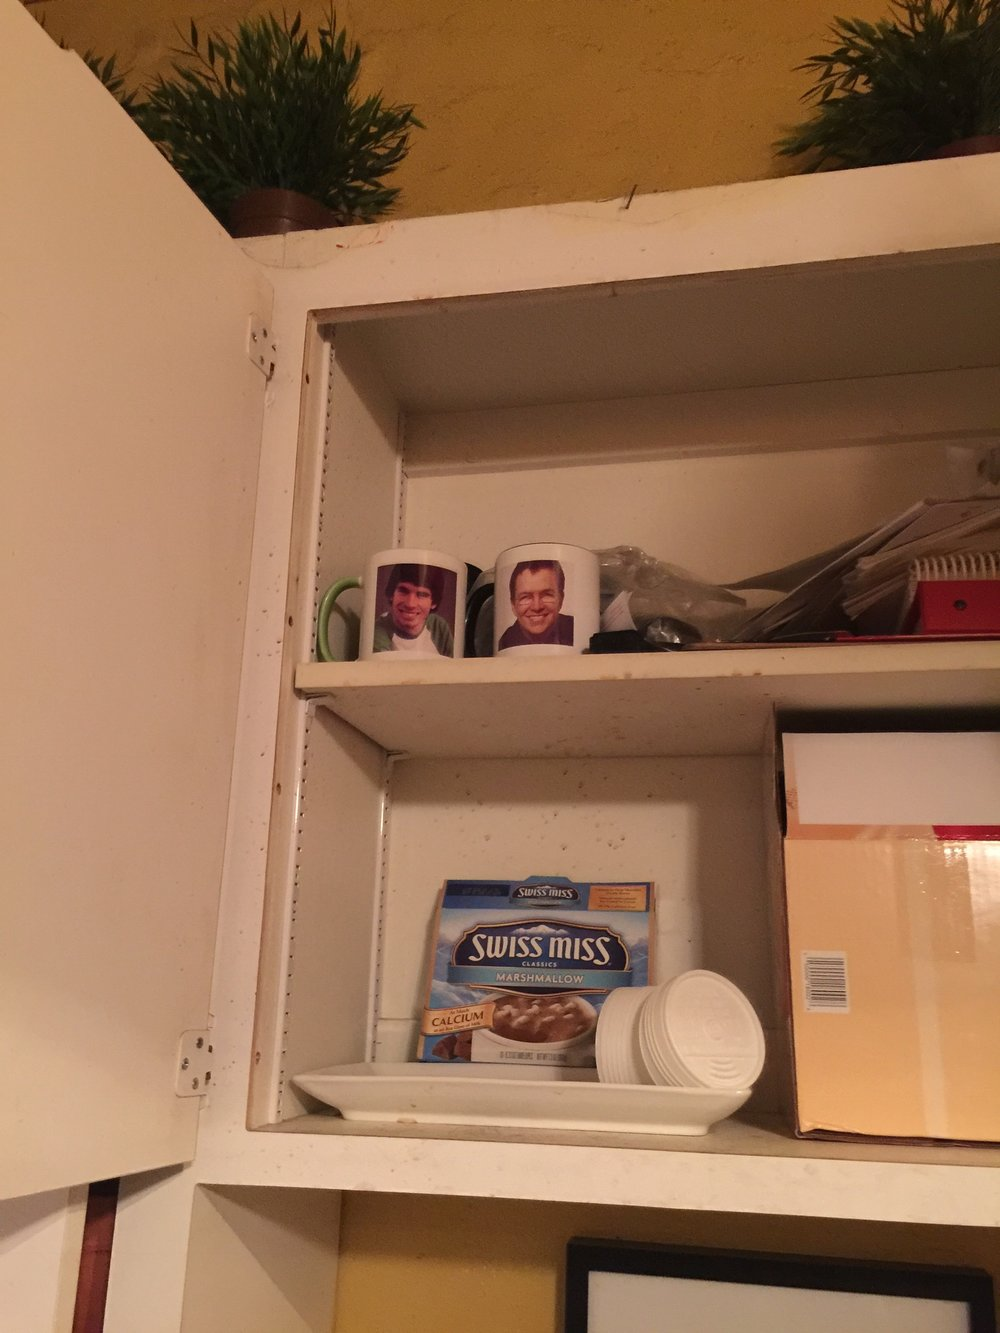 Our audition mugs safe on their shelf at The Lounge Theatre!